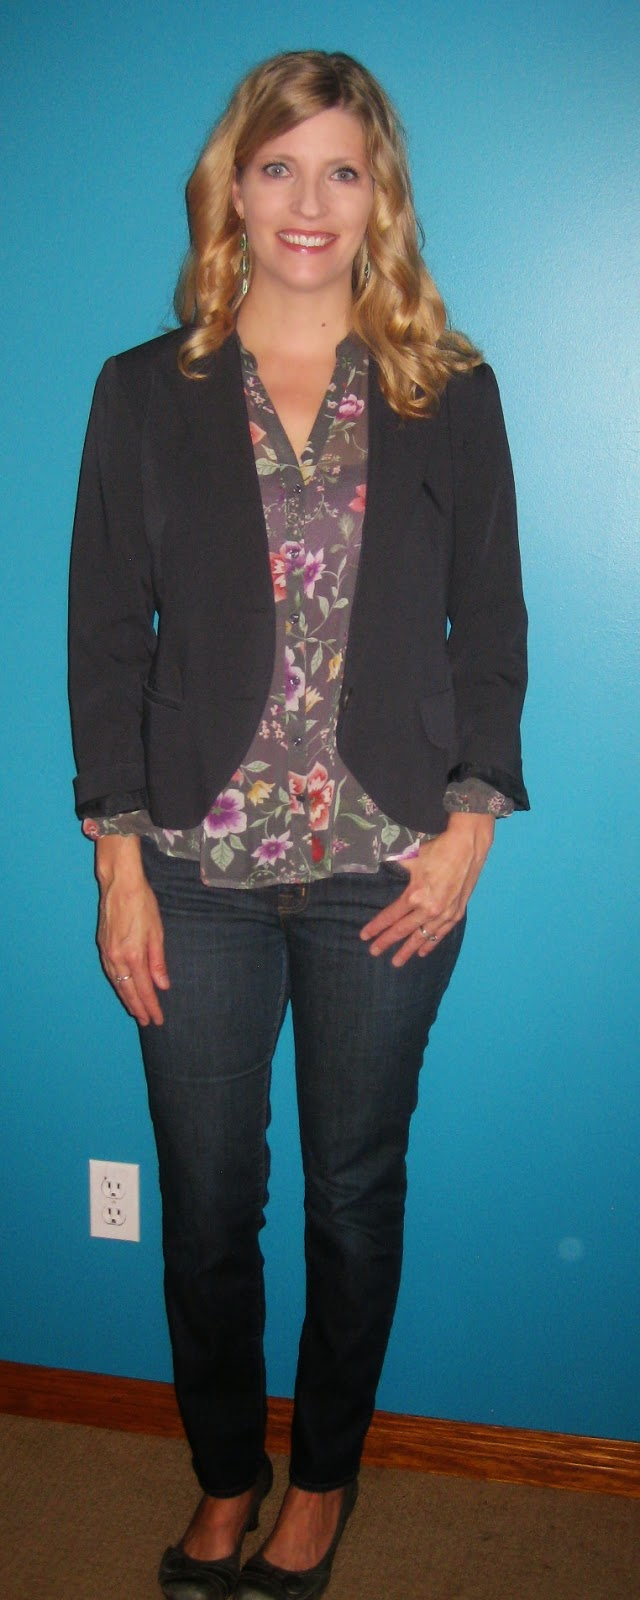 VV Boutique Style: Good Casual Friday